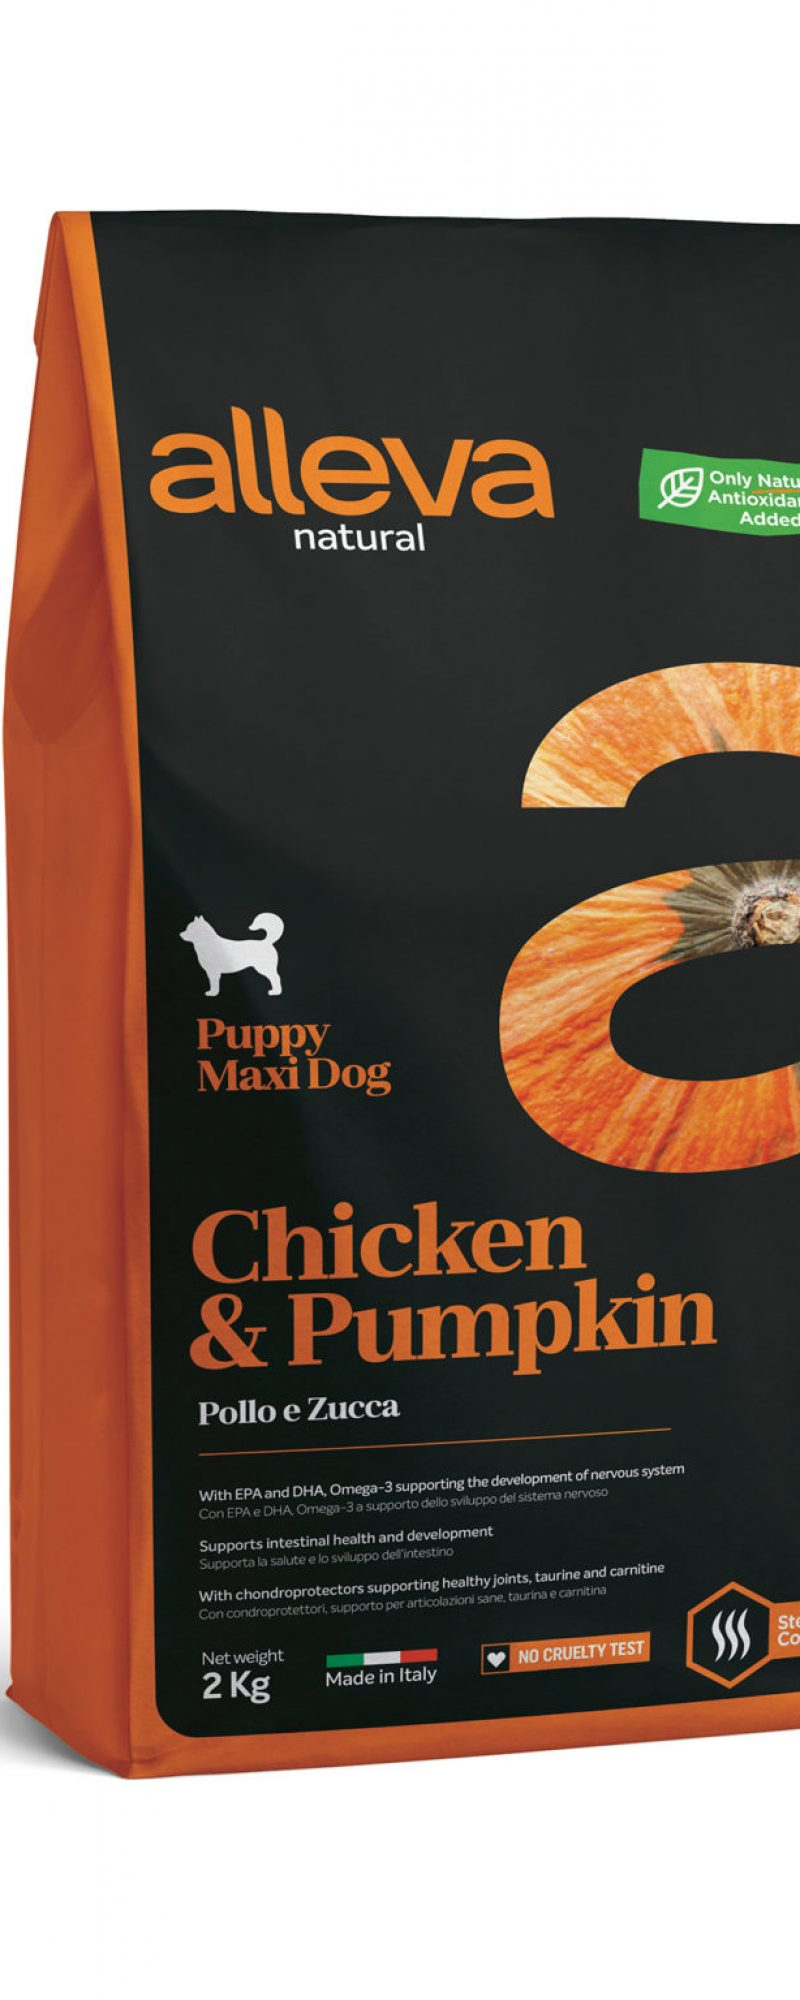 2kg_Chicken_Puppy_Maxi